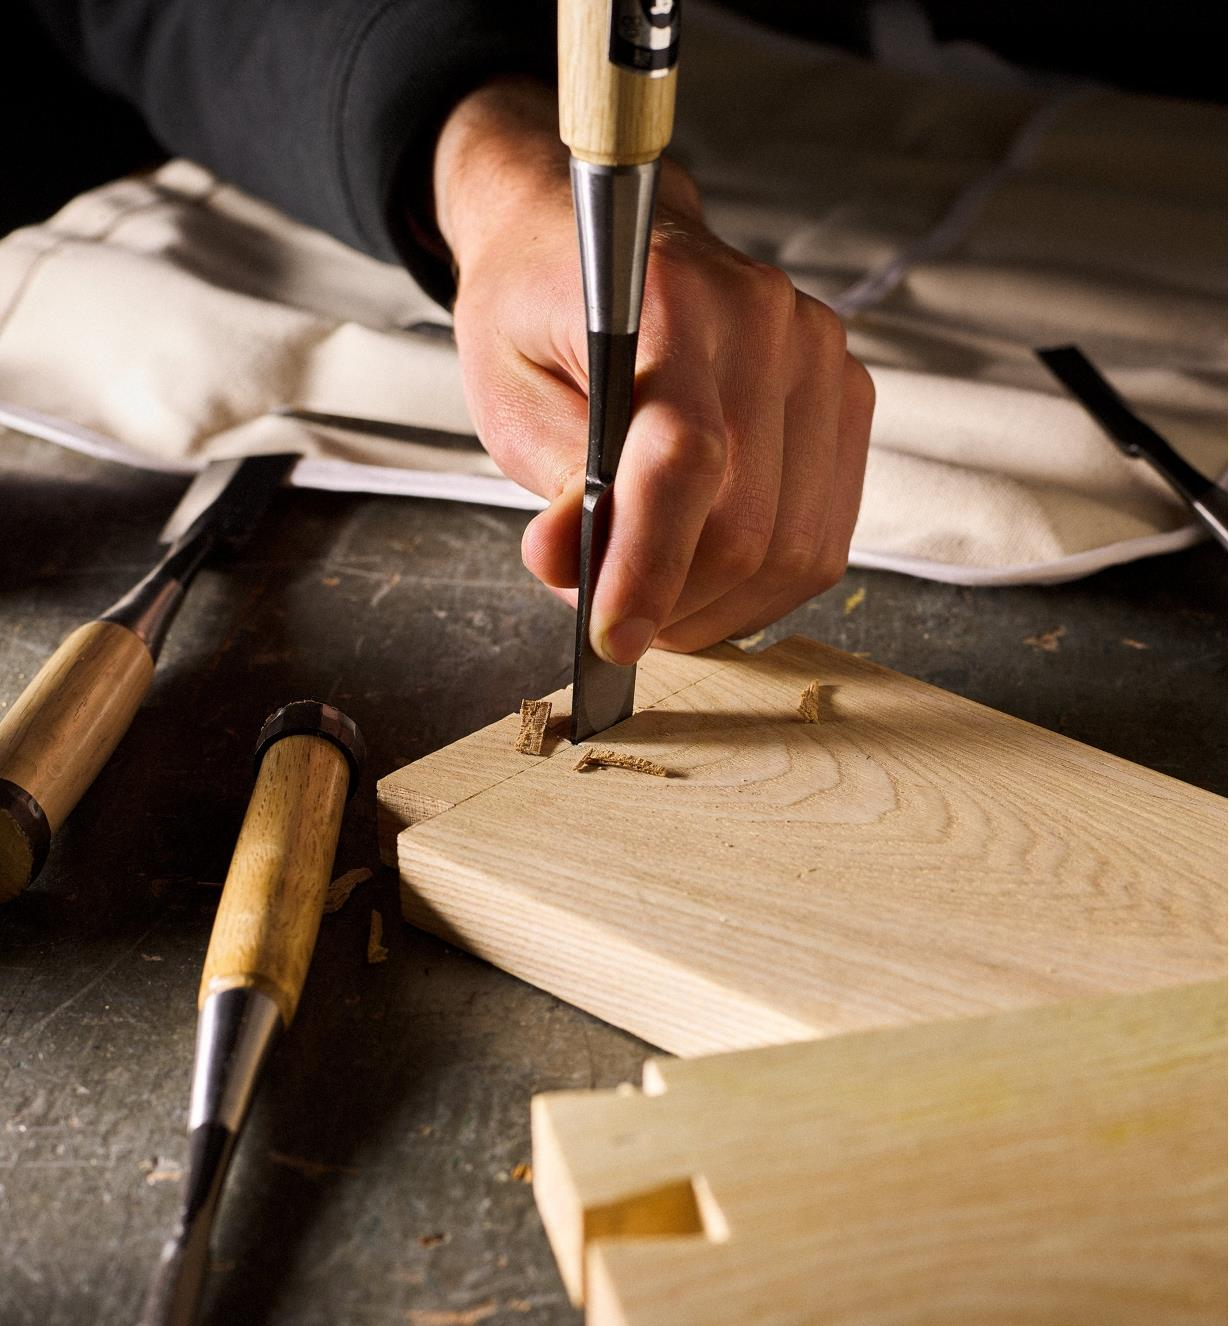 Using a Japanese dovetail chisel to chop out the waste between the pins of a dovetail joint